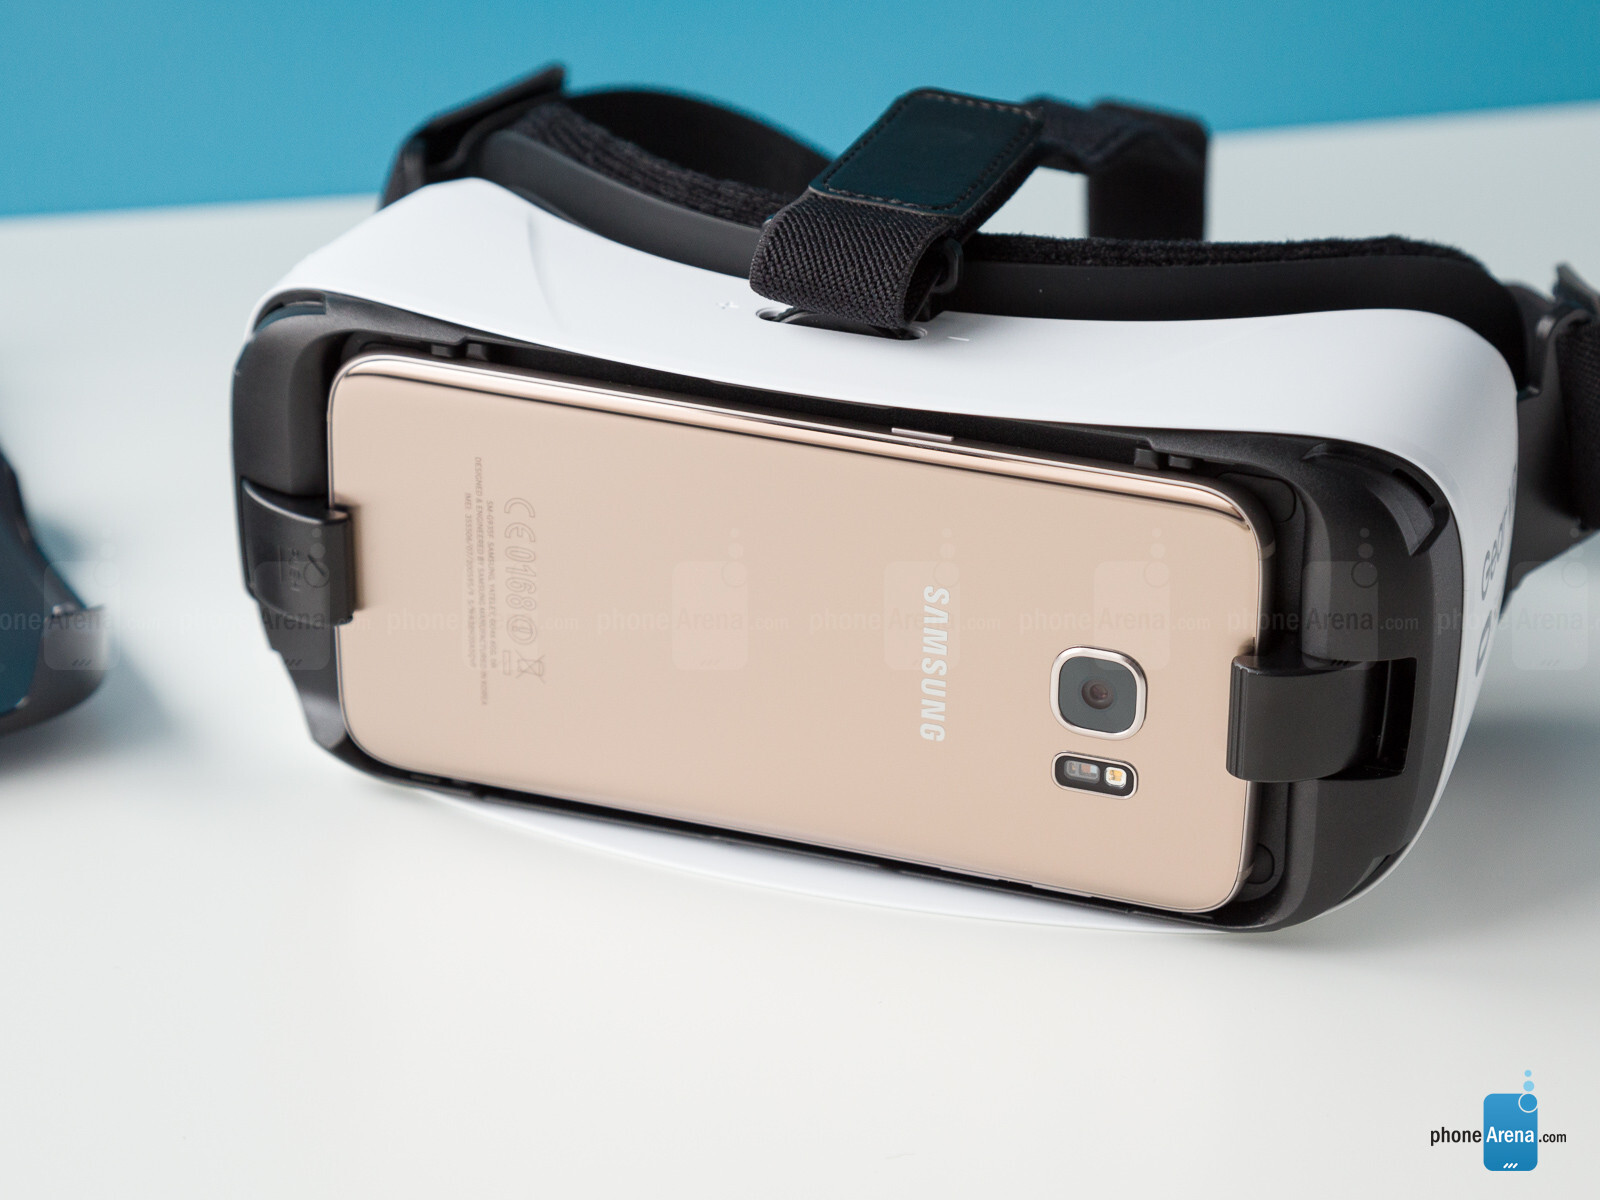 Vr Headset Comparison >> Samsung Gear VR Review - PhoneArena